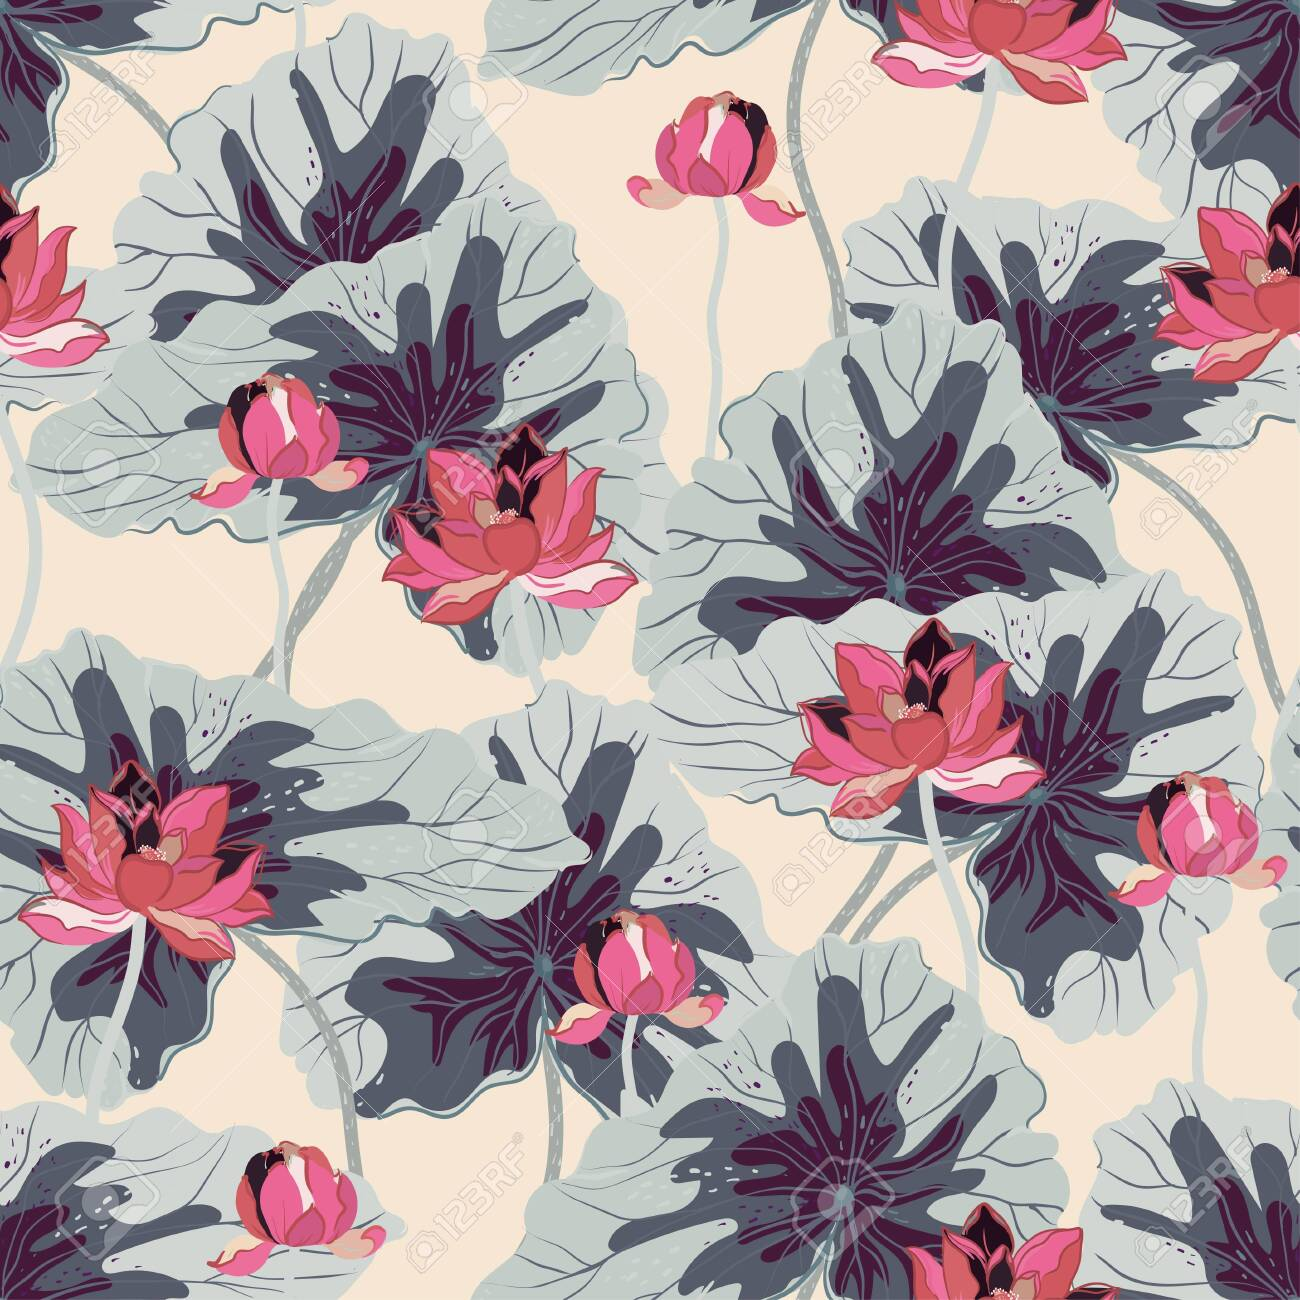 Pink lotuses with large light grey leaves on a cream color background. Vector seamless floral pattern. Square repeating design for fabric and wallpaper. - 147307158